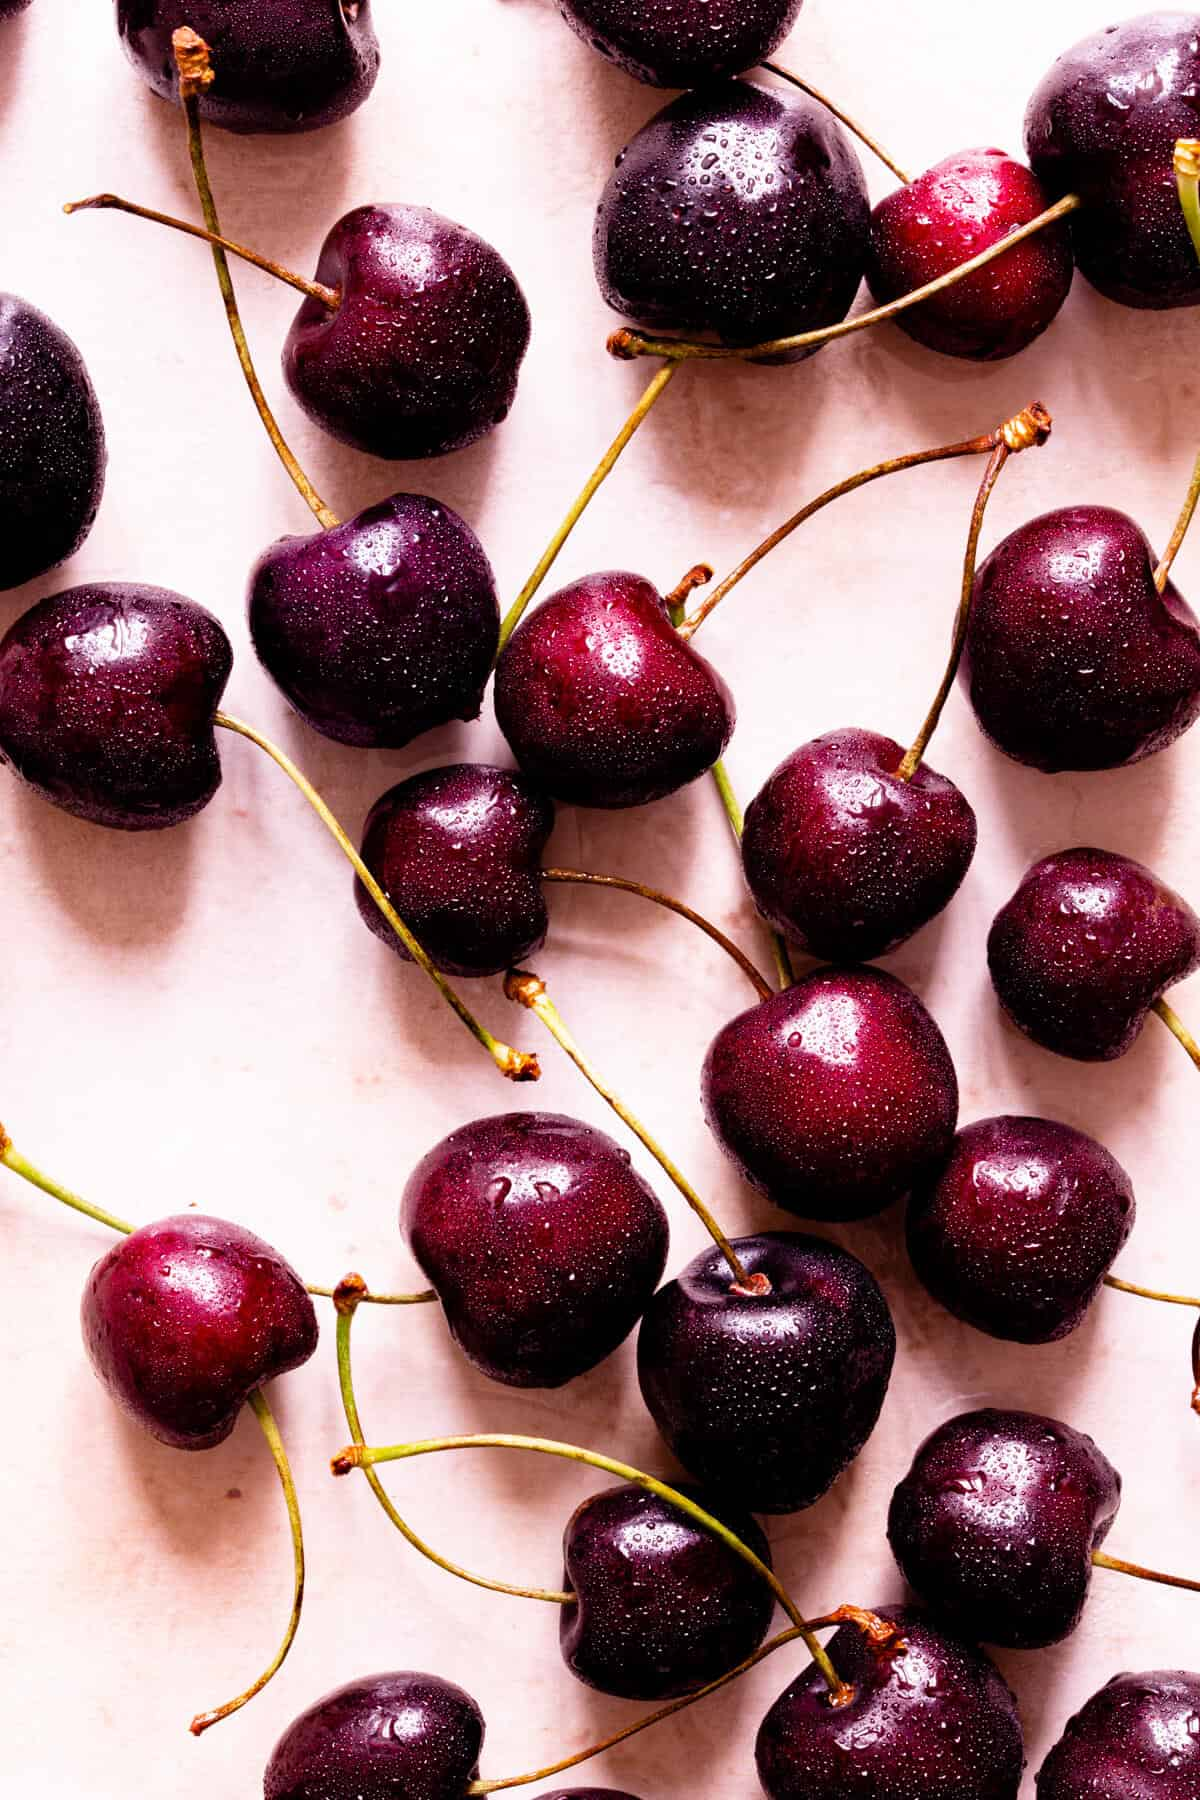 top view of fresh cherries with stems attached